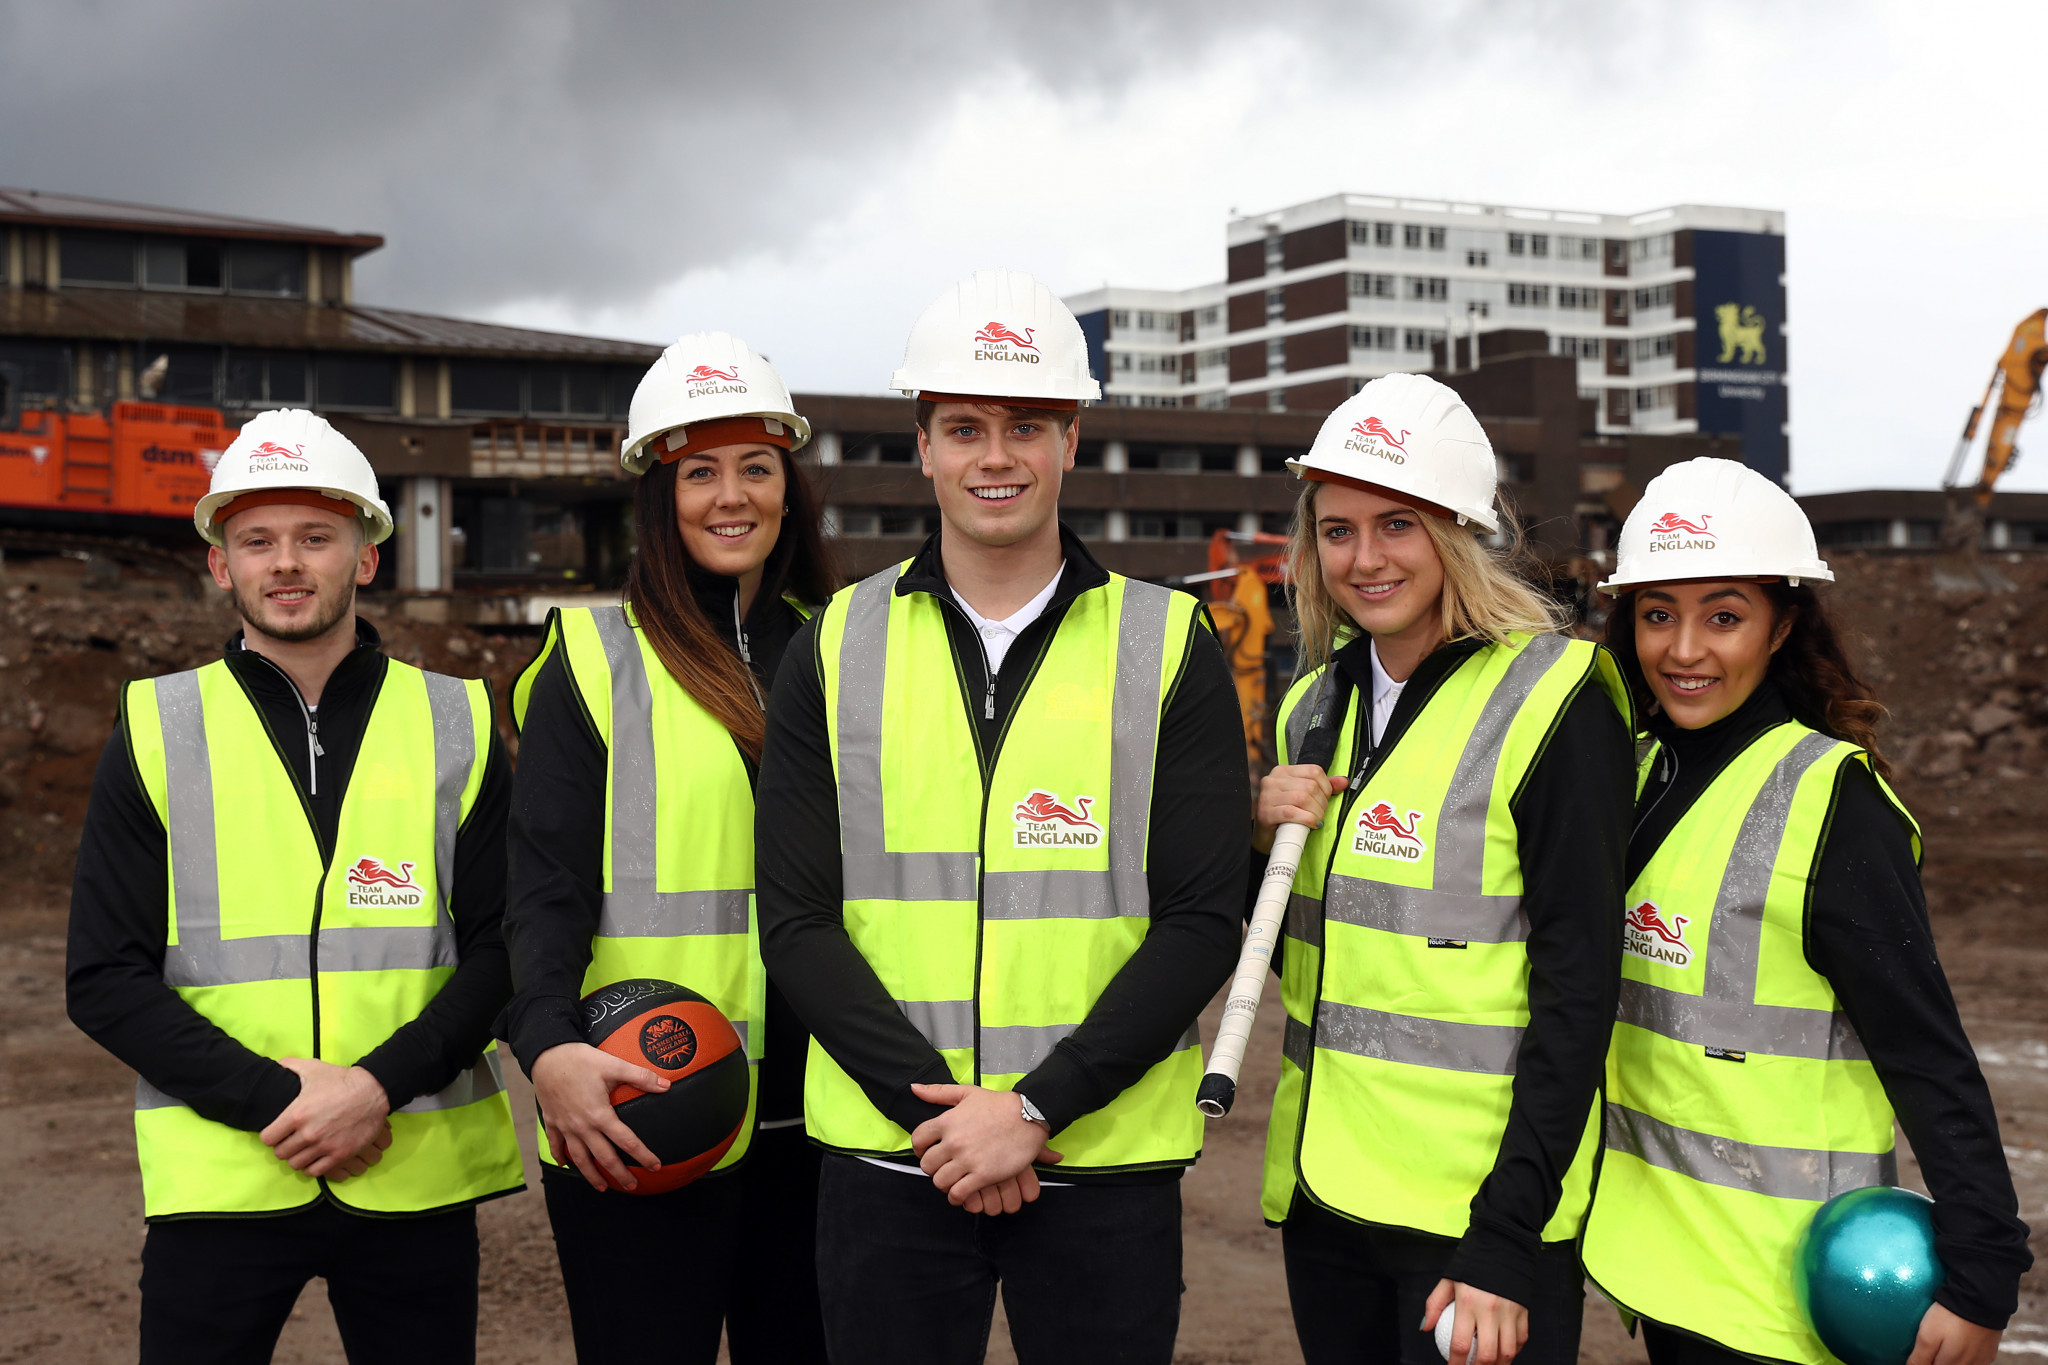 Team England athletes Dominick Cunningham (gymnast), Siobhan Prior (basketball) Tom Hamer (swimmer), Lily Owsley (hockey) and Mimi Cesar (gymnast) at the proposed site for the 2022 Commonwealth Games Athletes' Village ©Getty Images